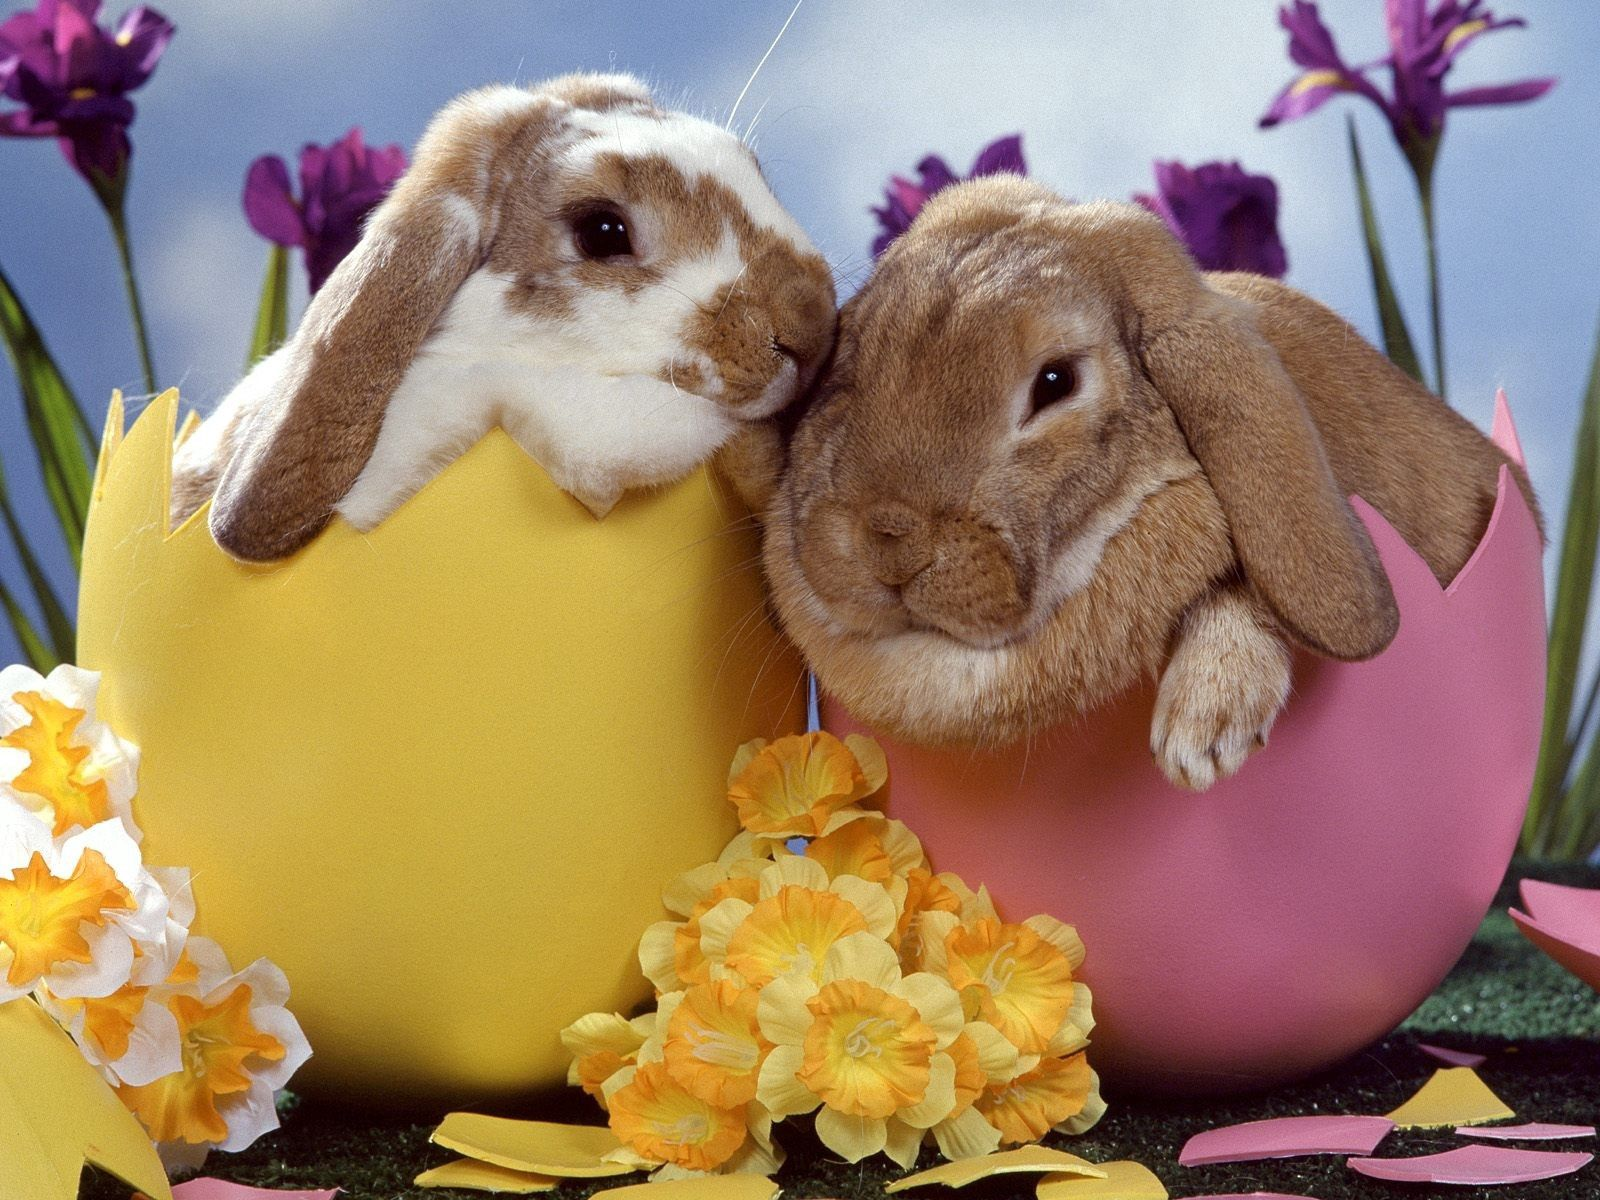 91275 download wallpaper Animals, Flowers, Rabbits, Couple, Pair, Sleep, Dream screensavers and pictures for free